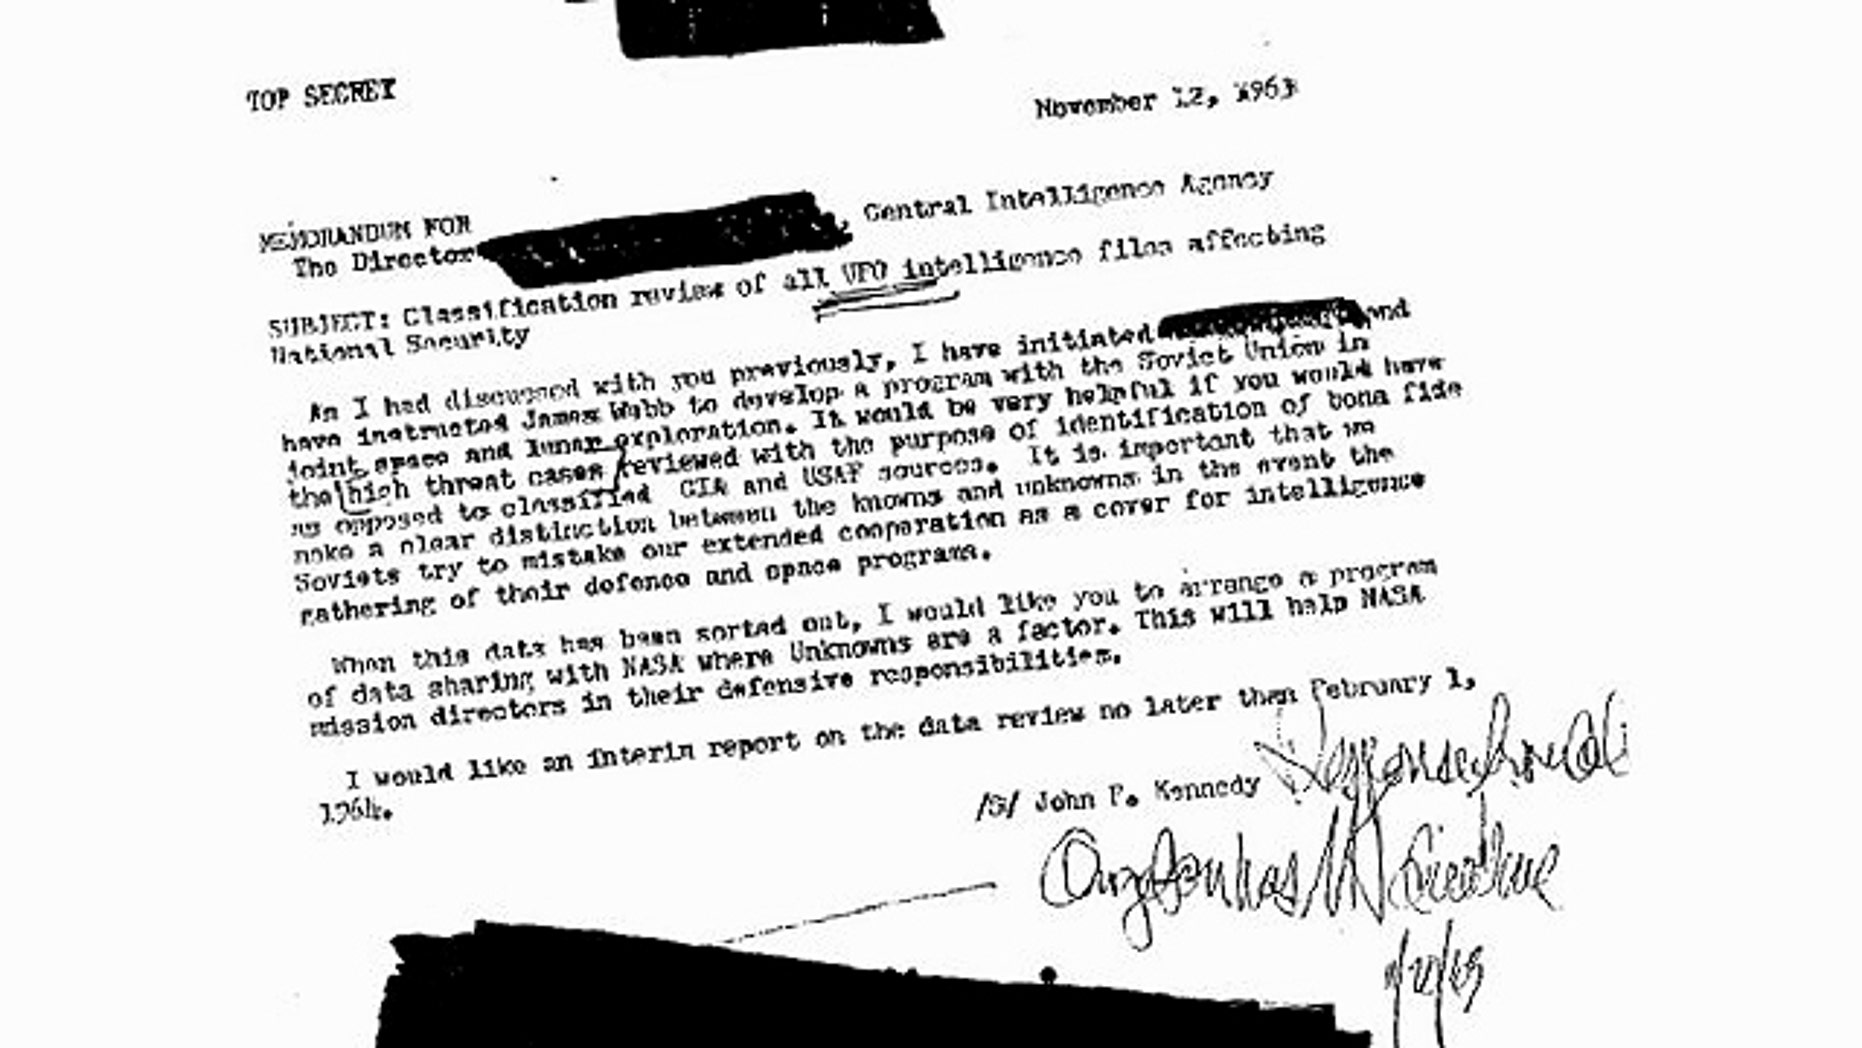 A redacted CIA memo that some claim suggests President John F. Kennedy wanted more information on UFOs during the Cold War.